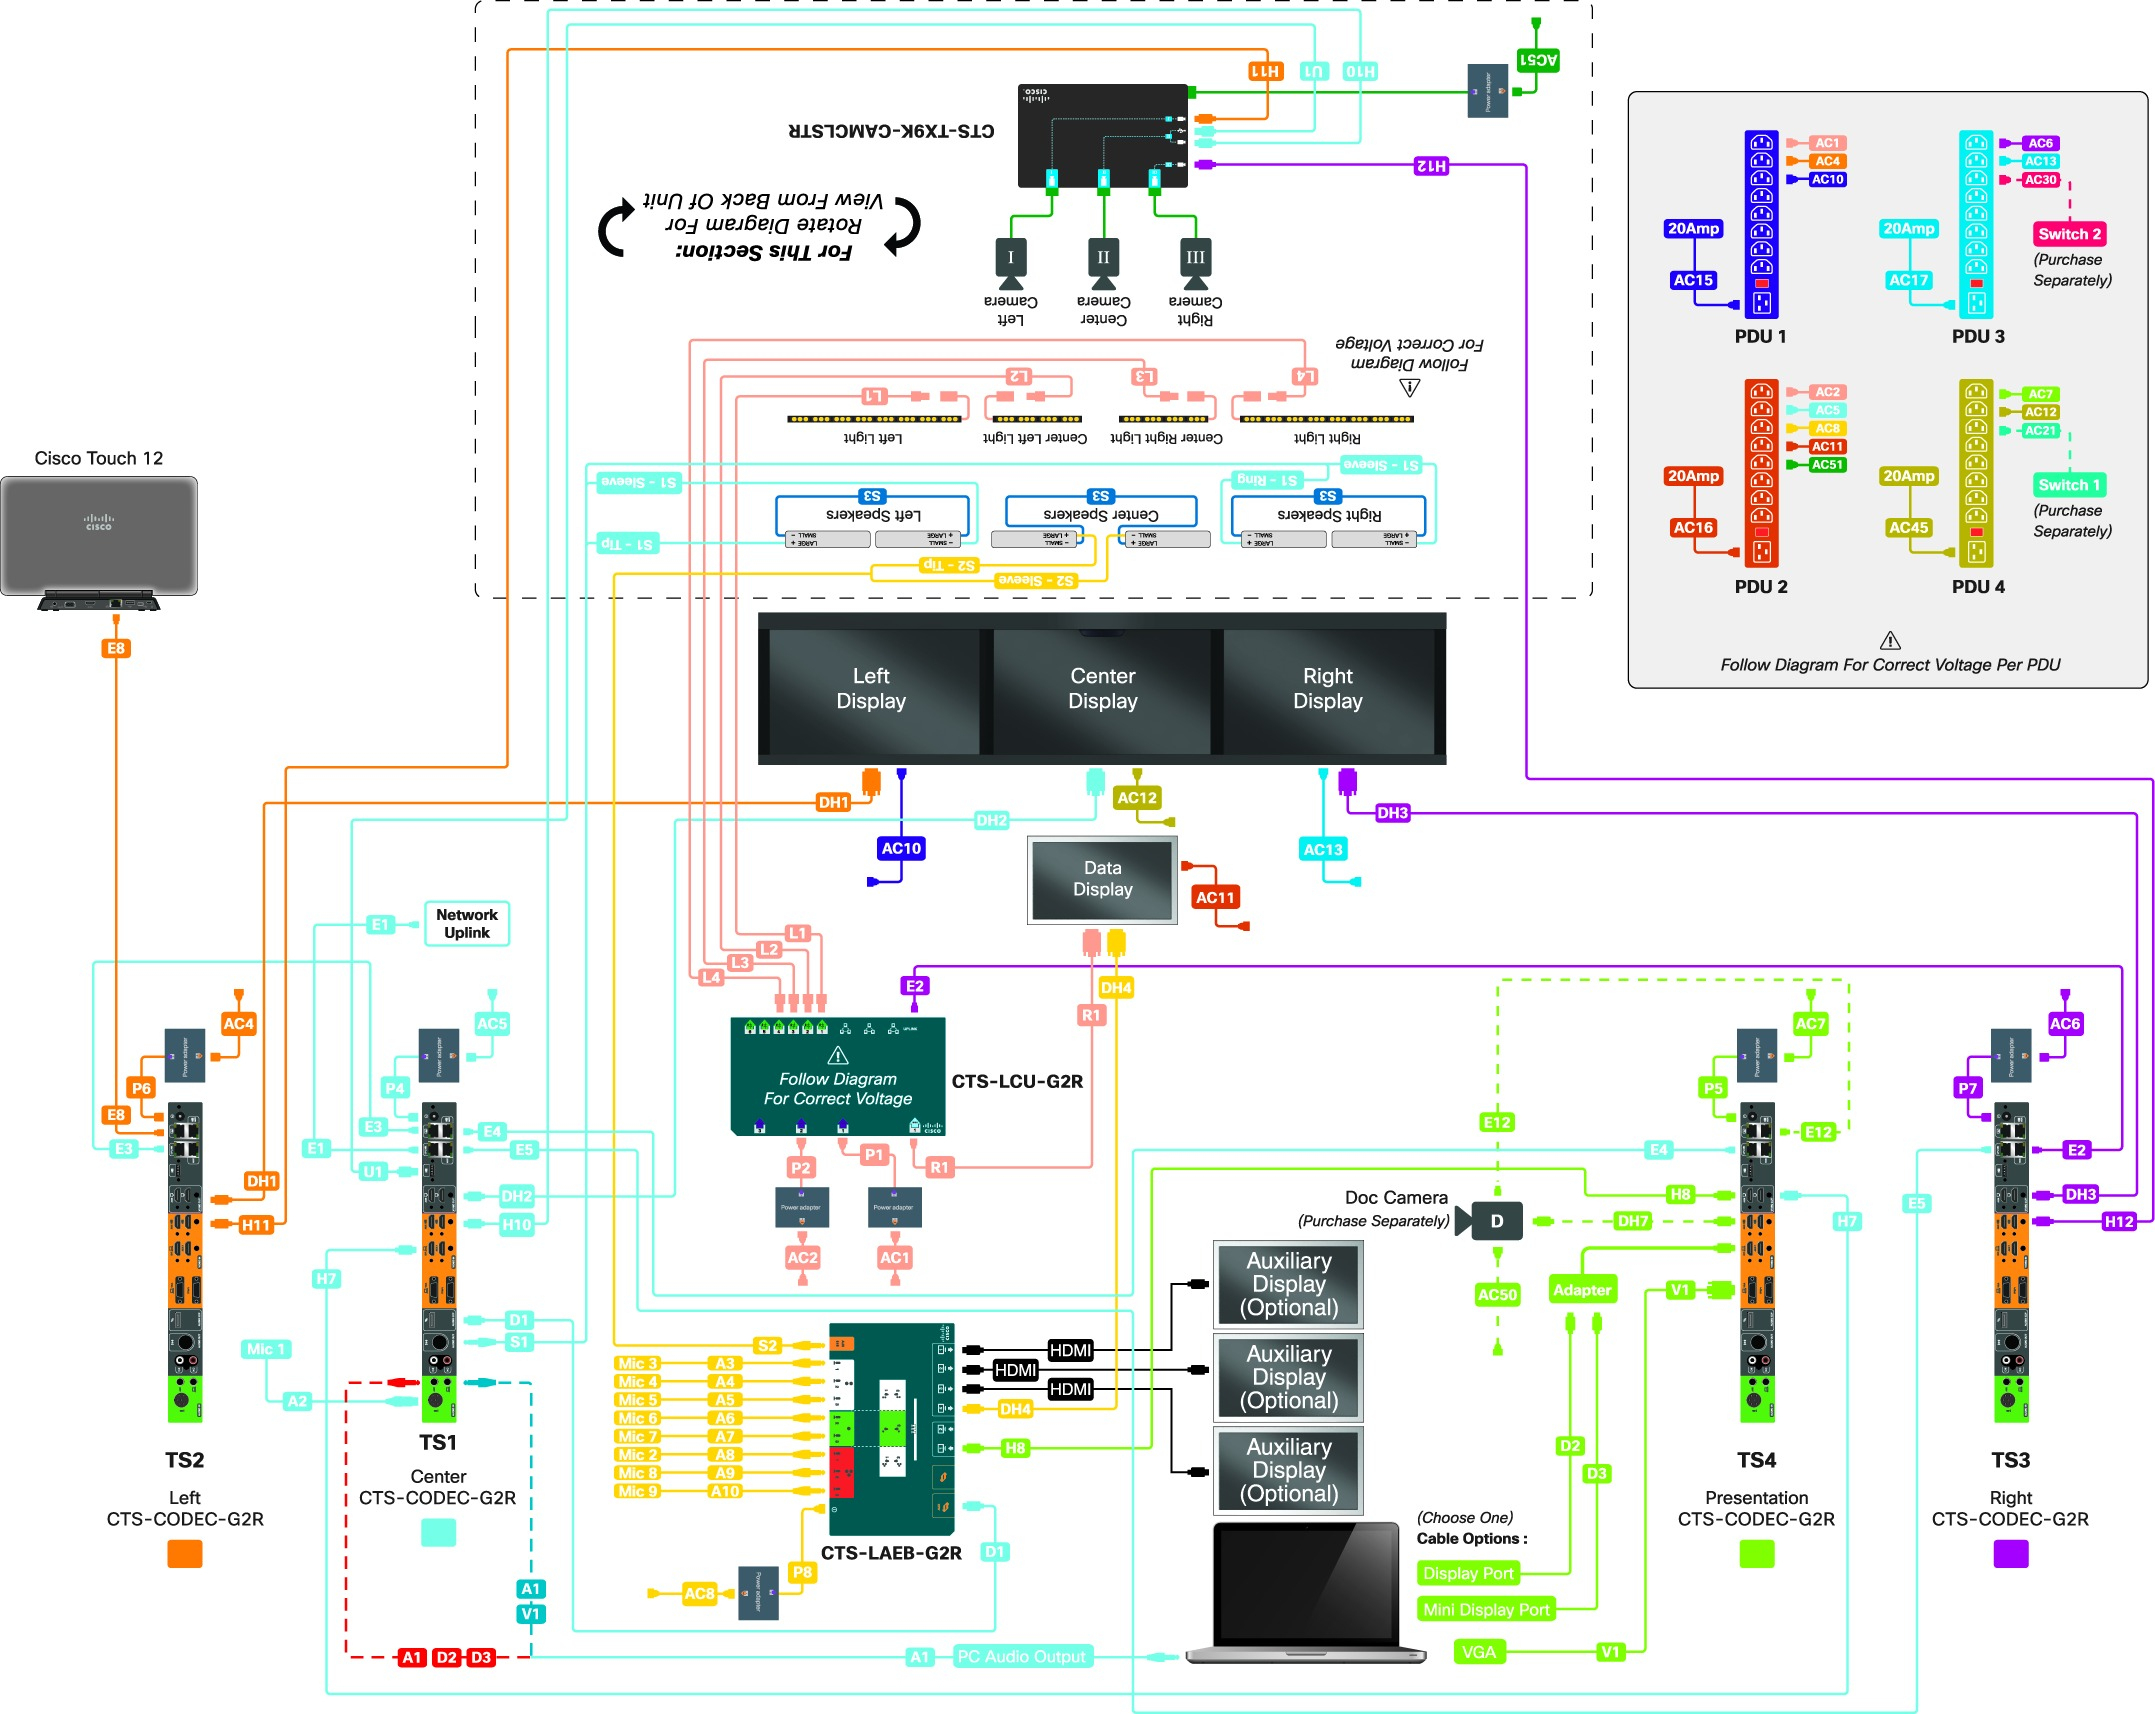 Dvi Home Wiring | Wiring Library - Male Ethernet To Male Usb 2.0 Wiring Diagram